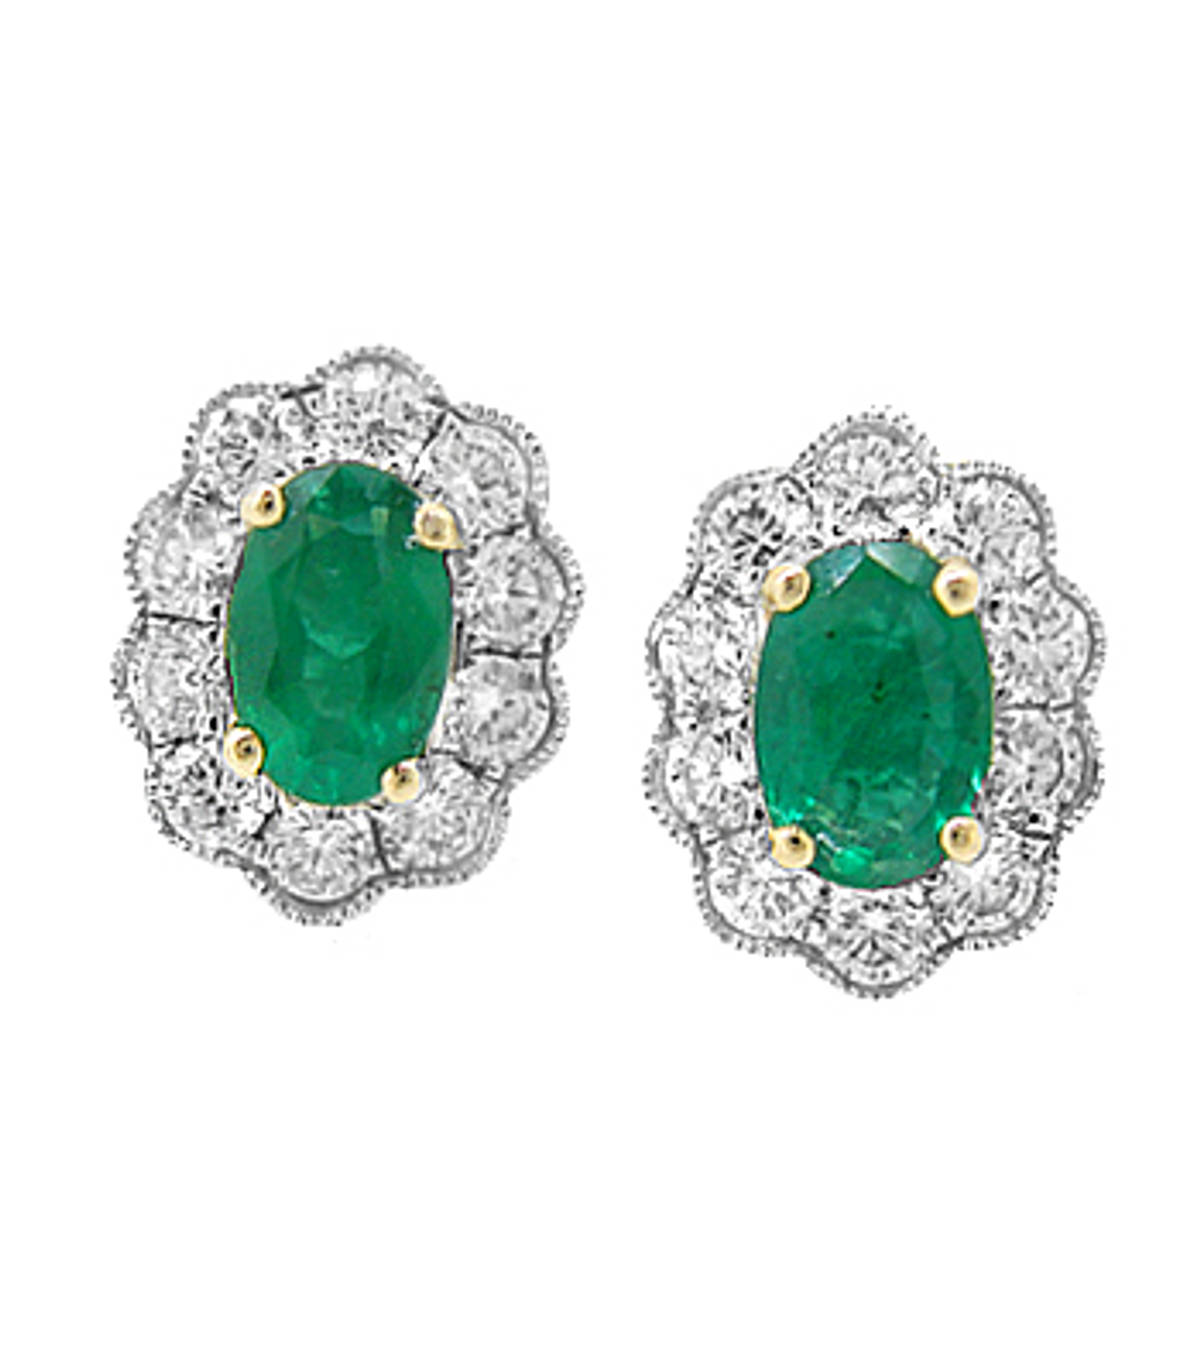 Oval emerald and diamond cluster stud earrings in 18 ct white gold